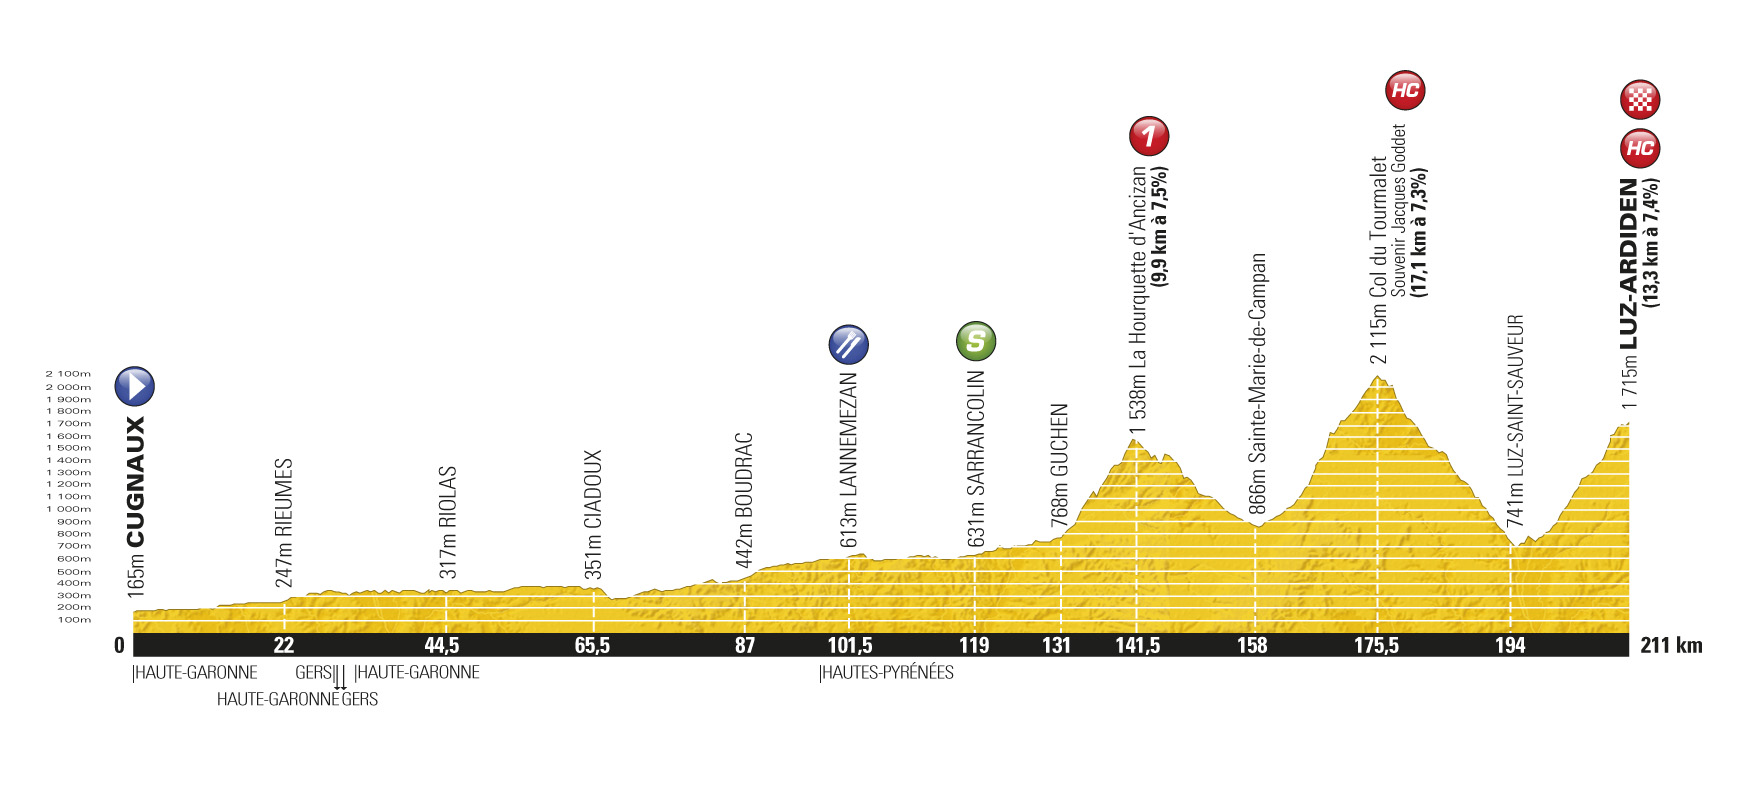 Stage 12 profile, Tour de France 2011